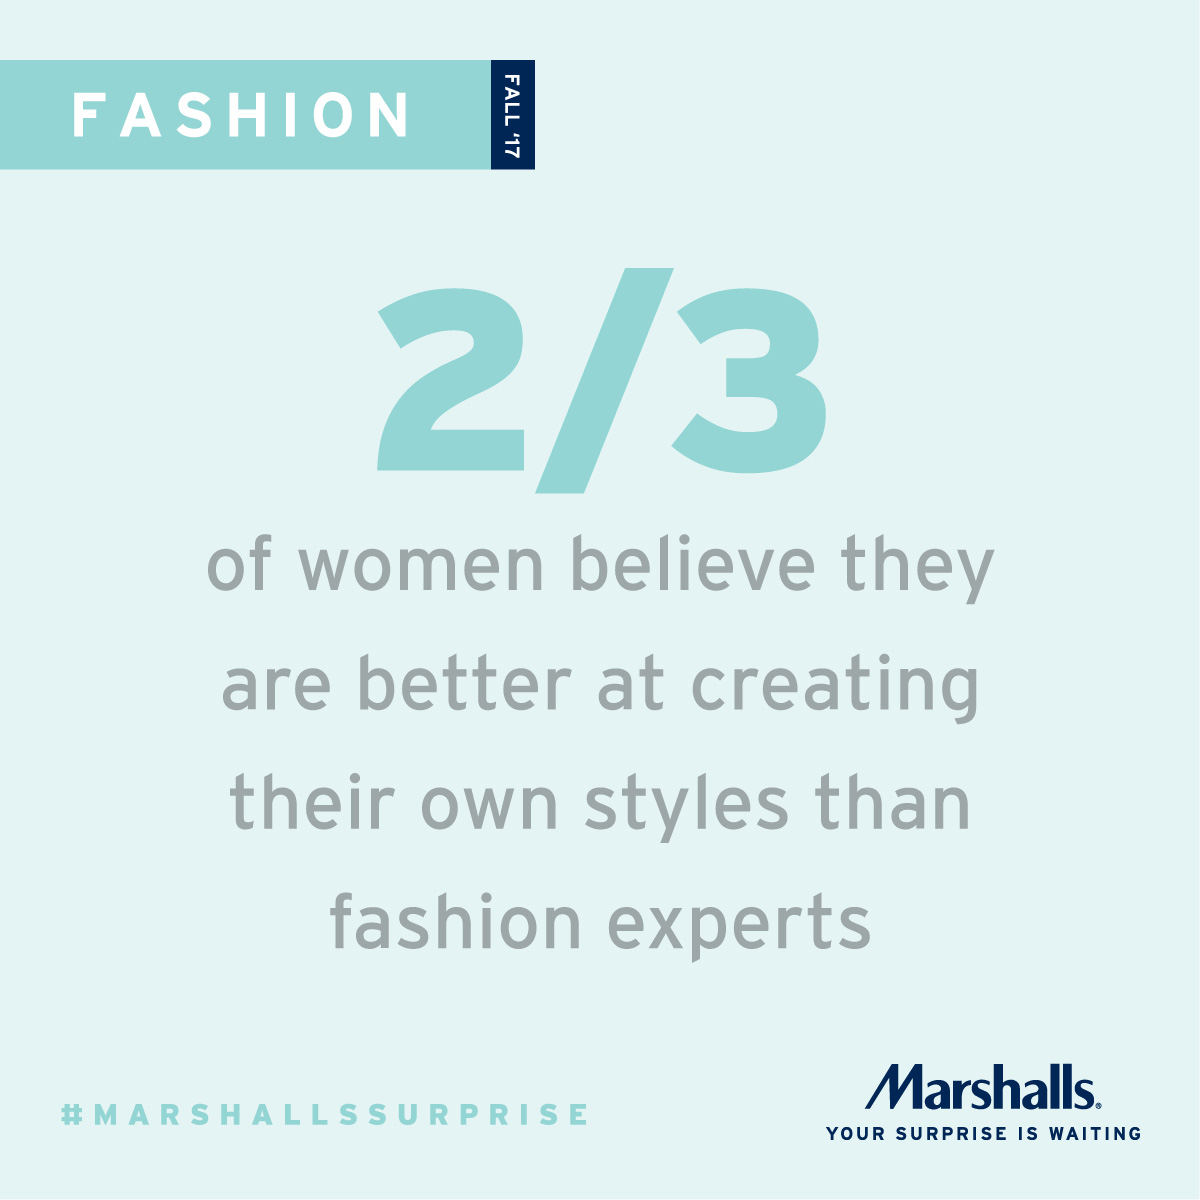 A recent Marshalls survey reveals that two-thirds of women believe they are better at creating their own styles than fashion experts.